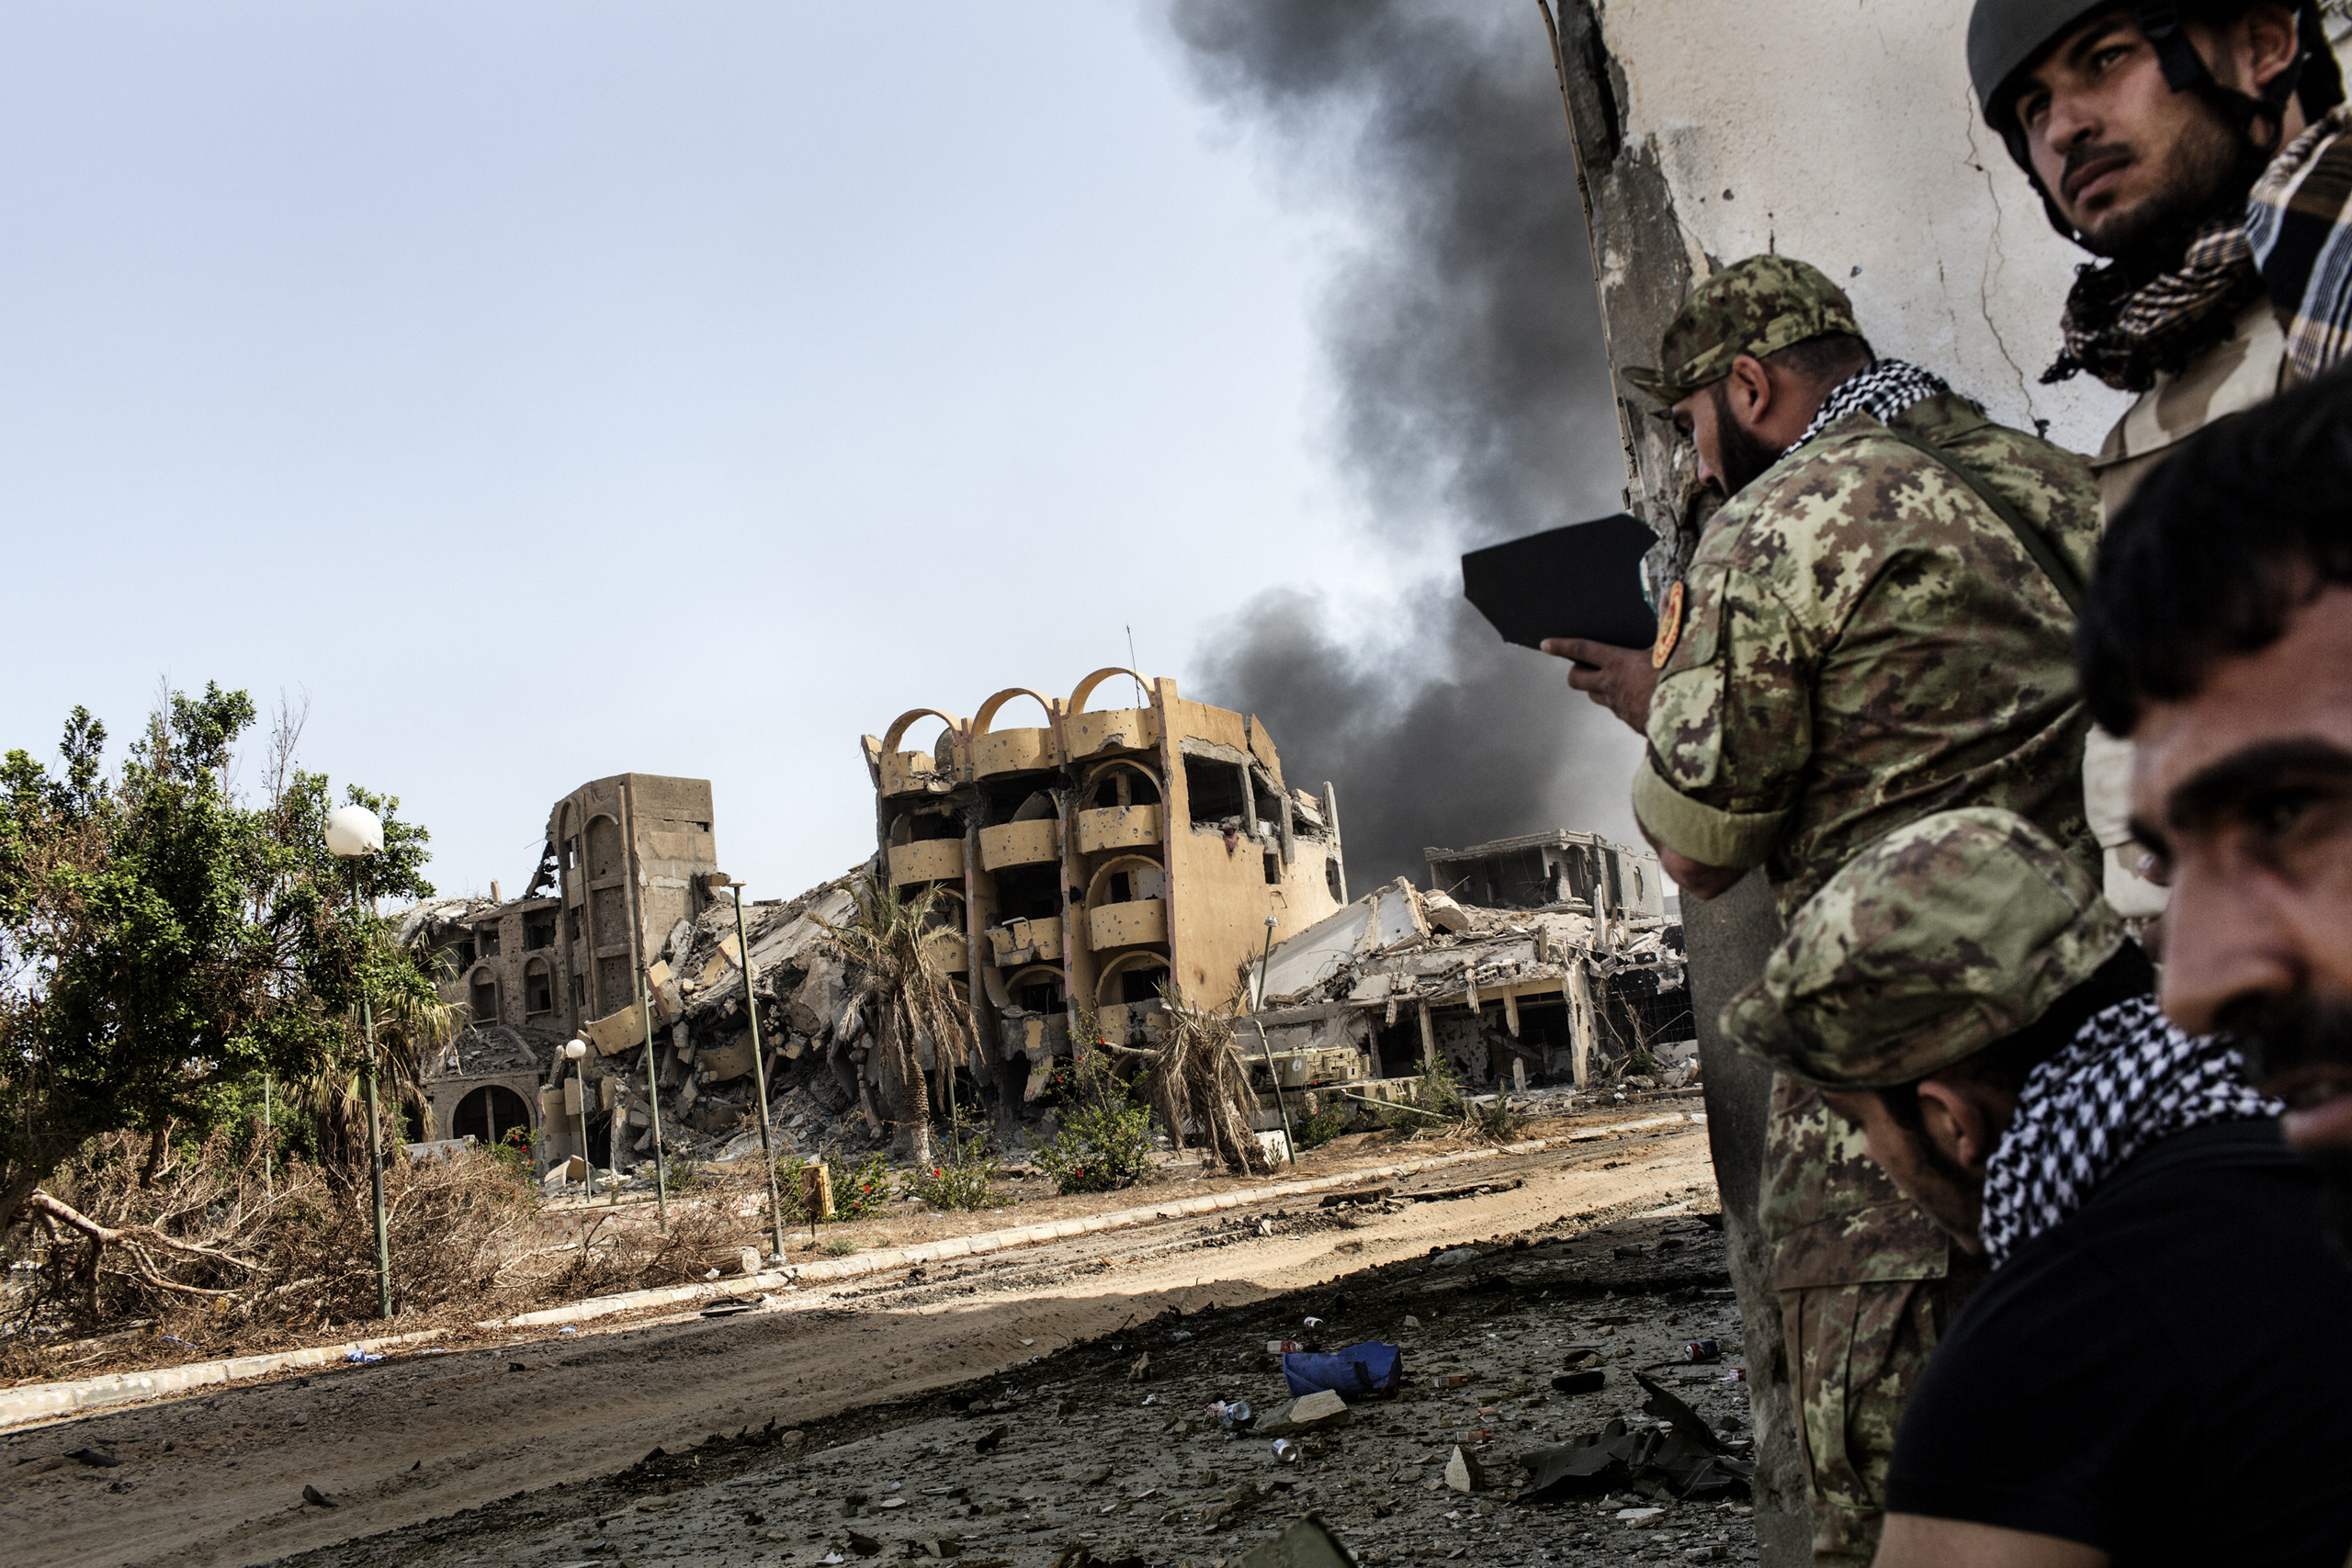 Libyan forces affiliated with the Tripoli government use a mirror to spot ISIS positions in District 3, the last stronghold of ISIS (Islamic State) in Sirte, Libya, Oct. 2, 2016.